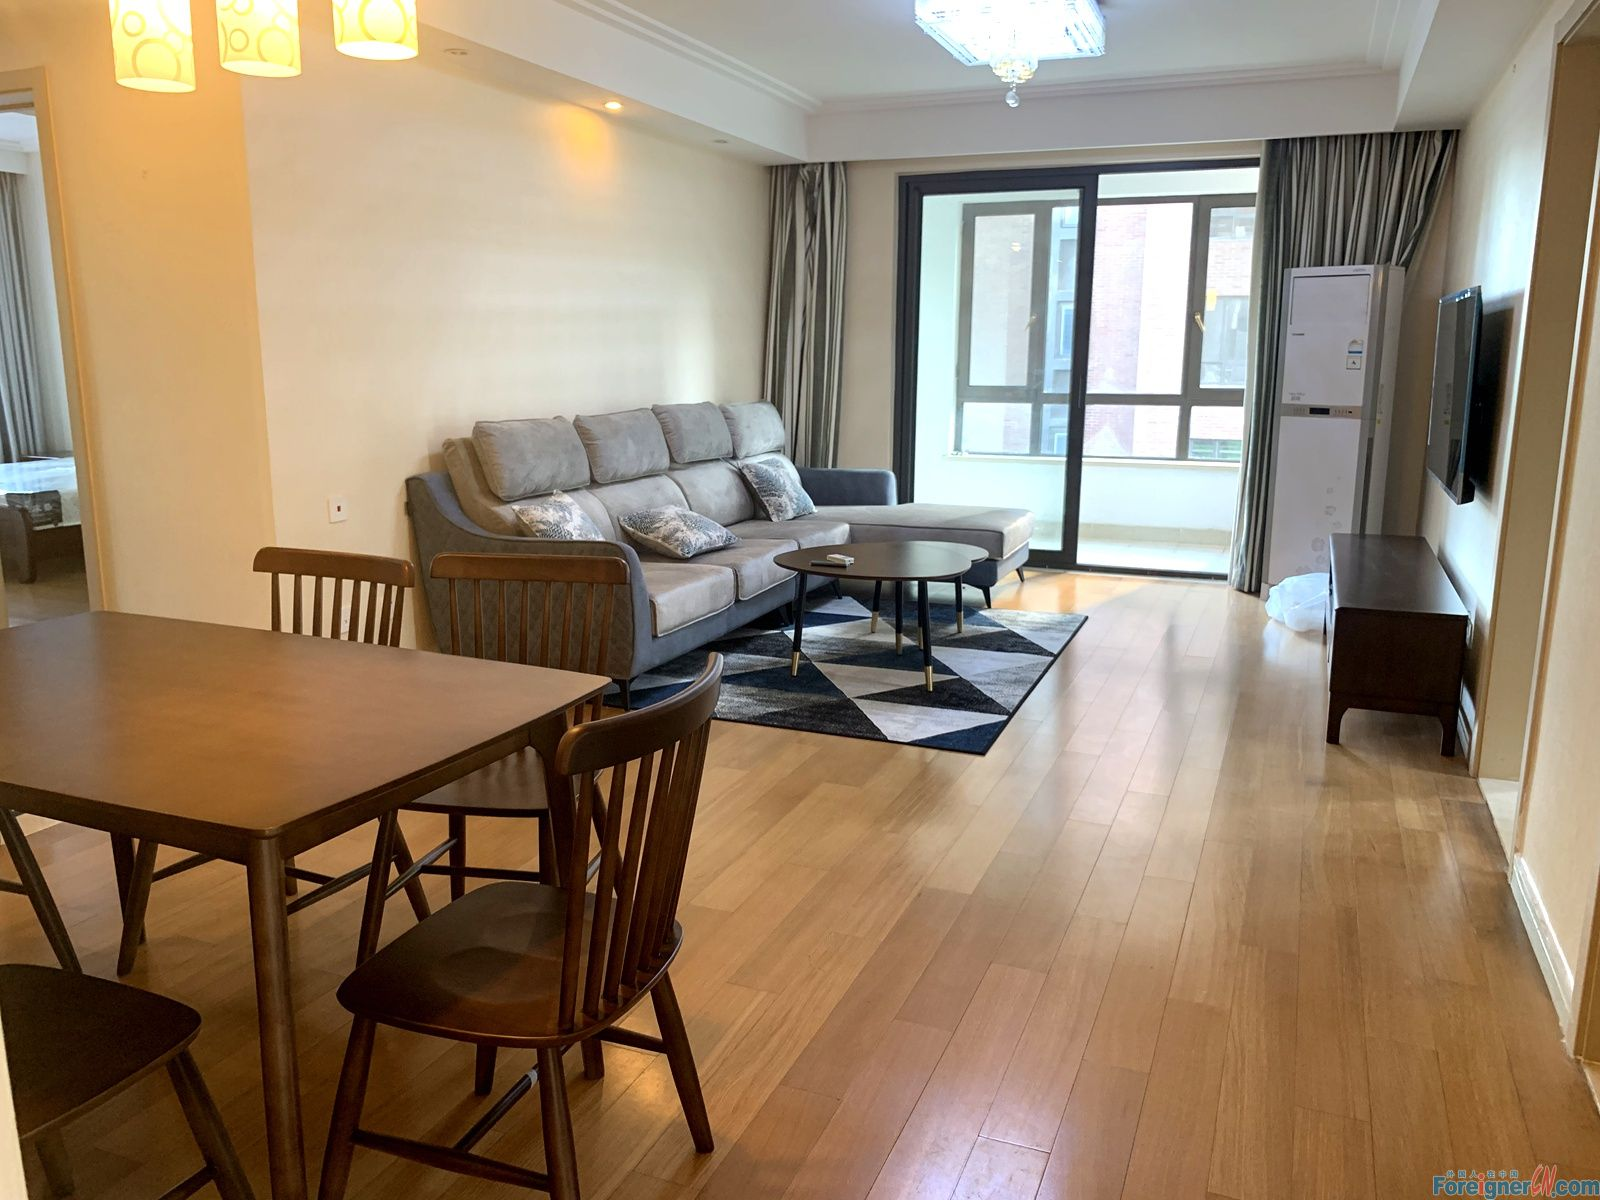 Times City 4br apartment for rent / east side of SIP / next to Metro station